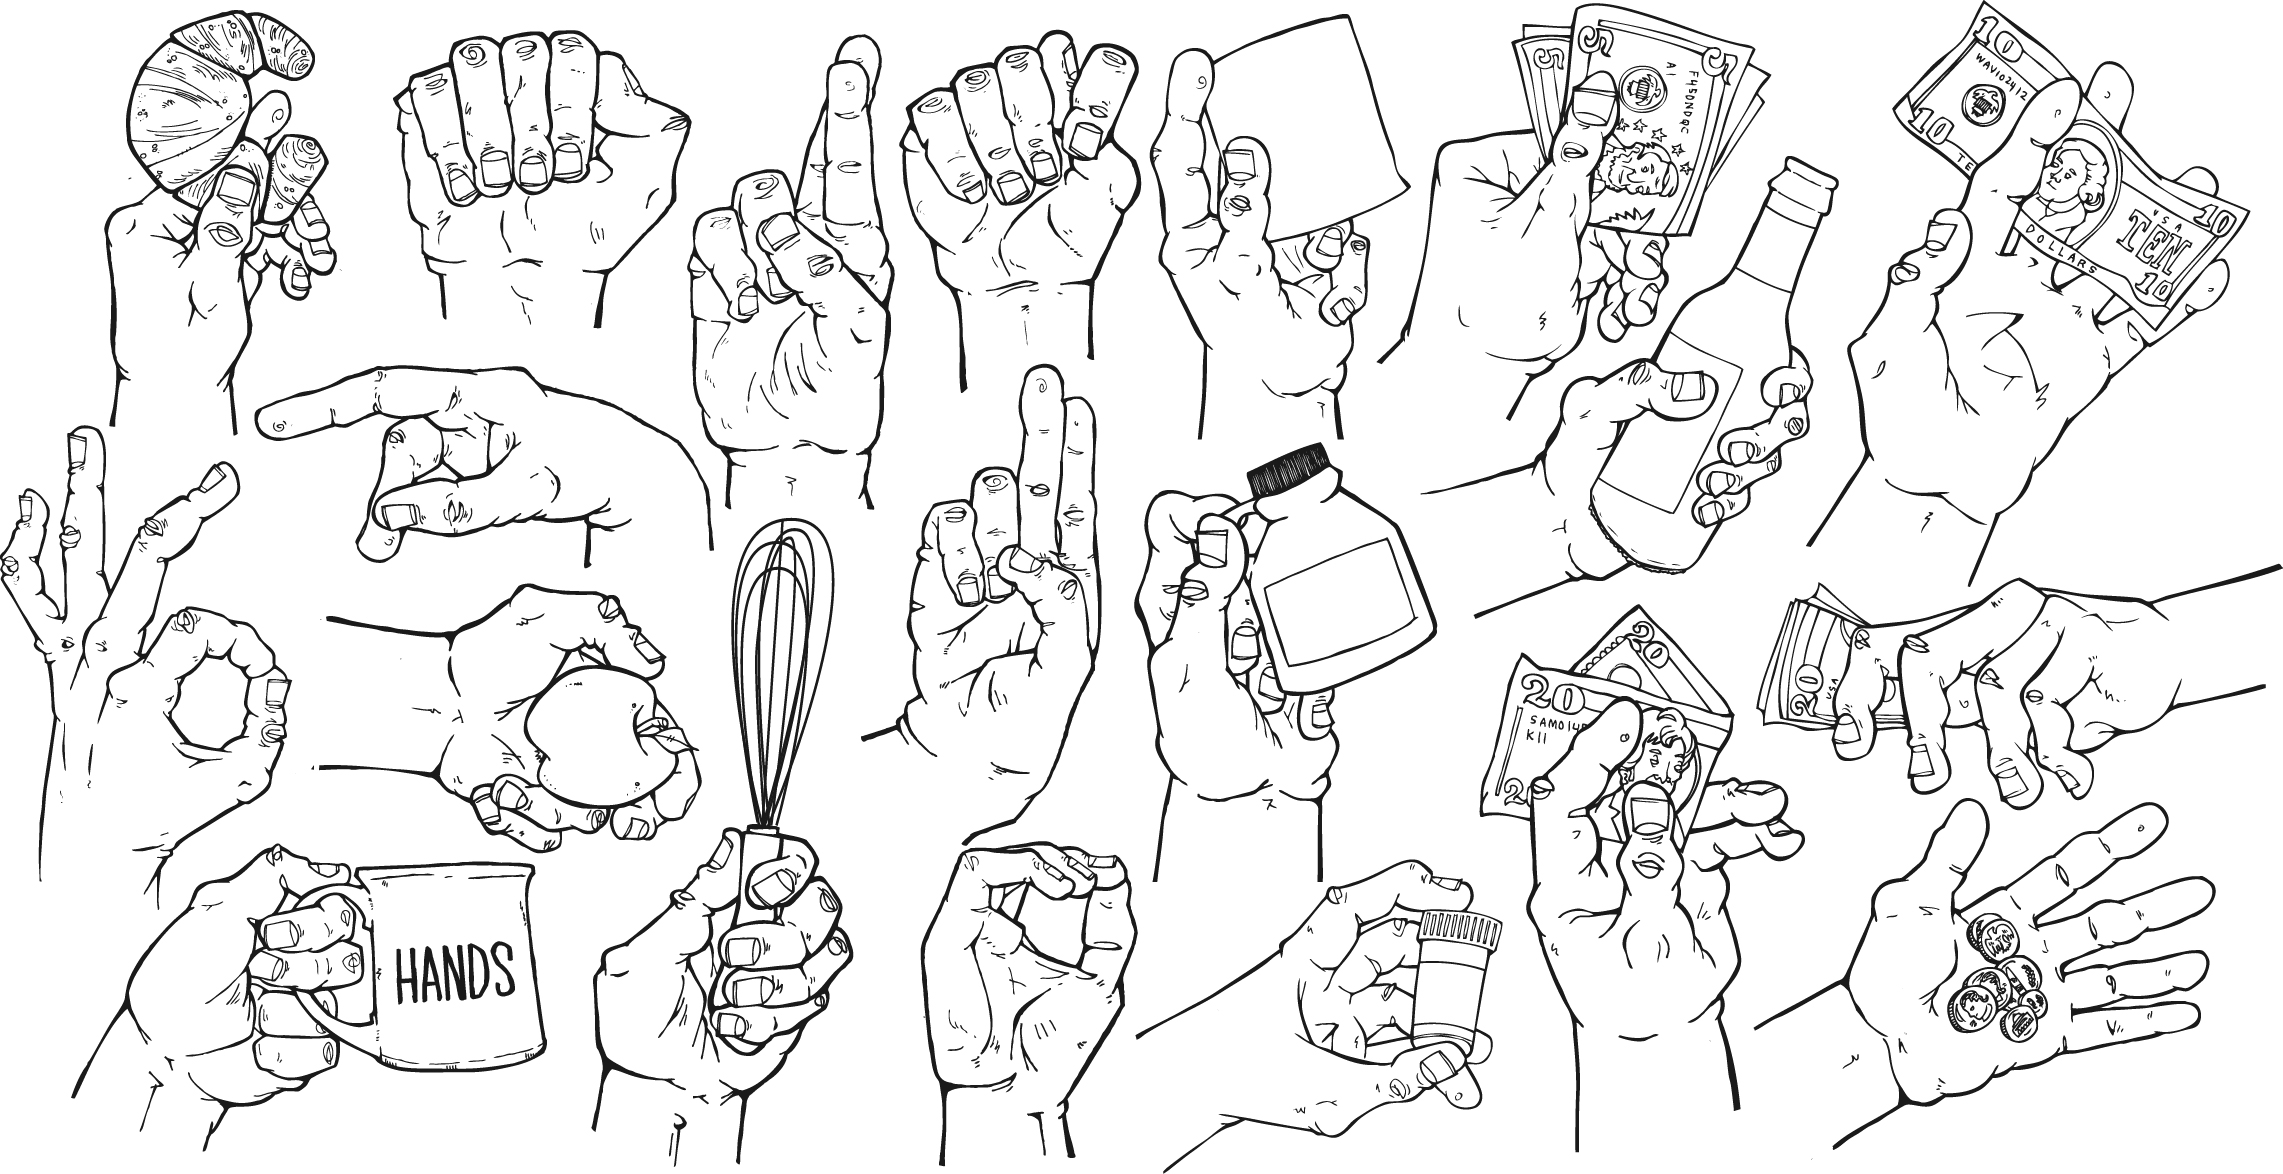 an assortment of hands for various projects